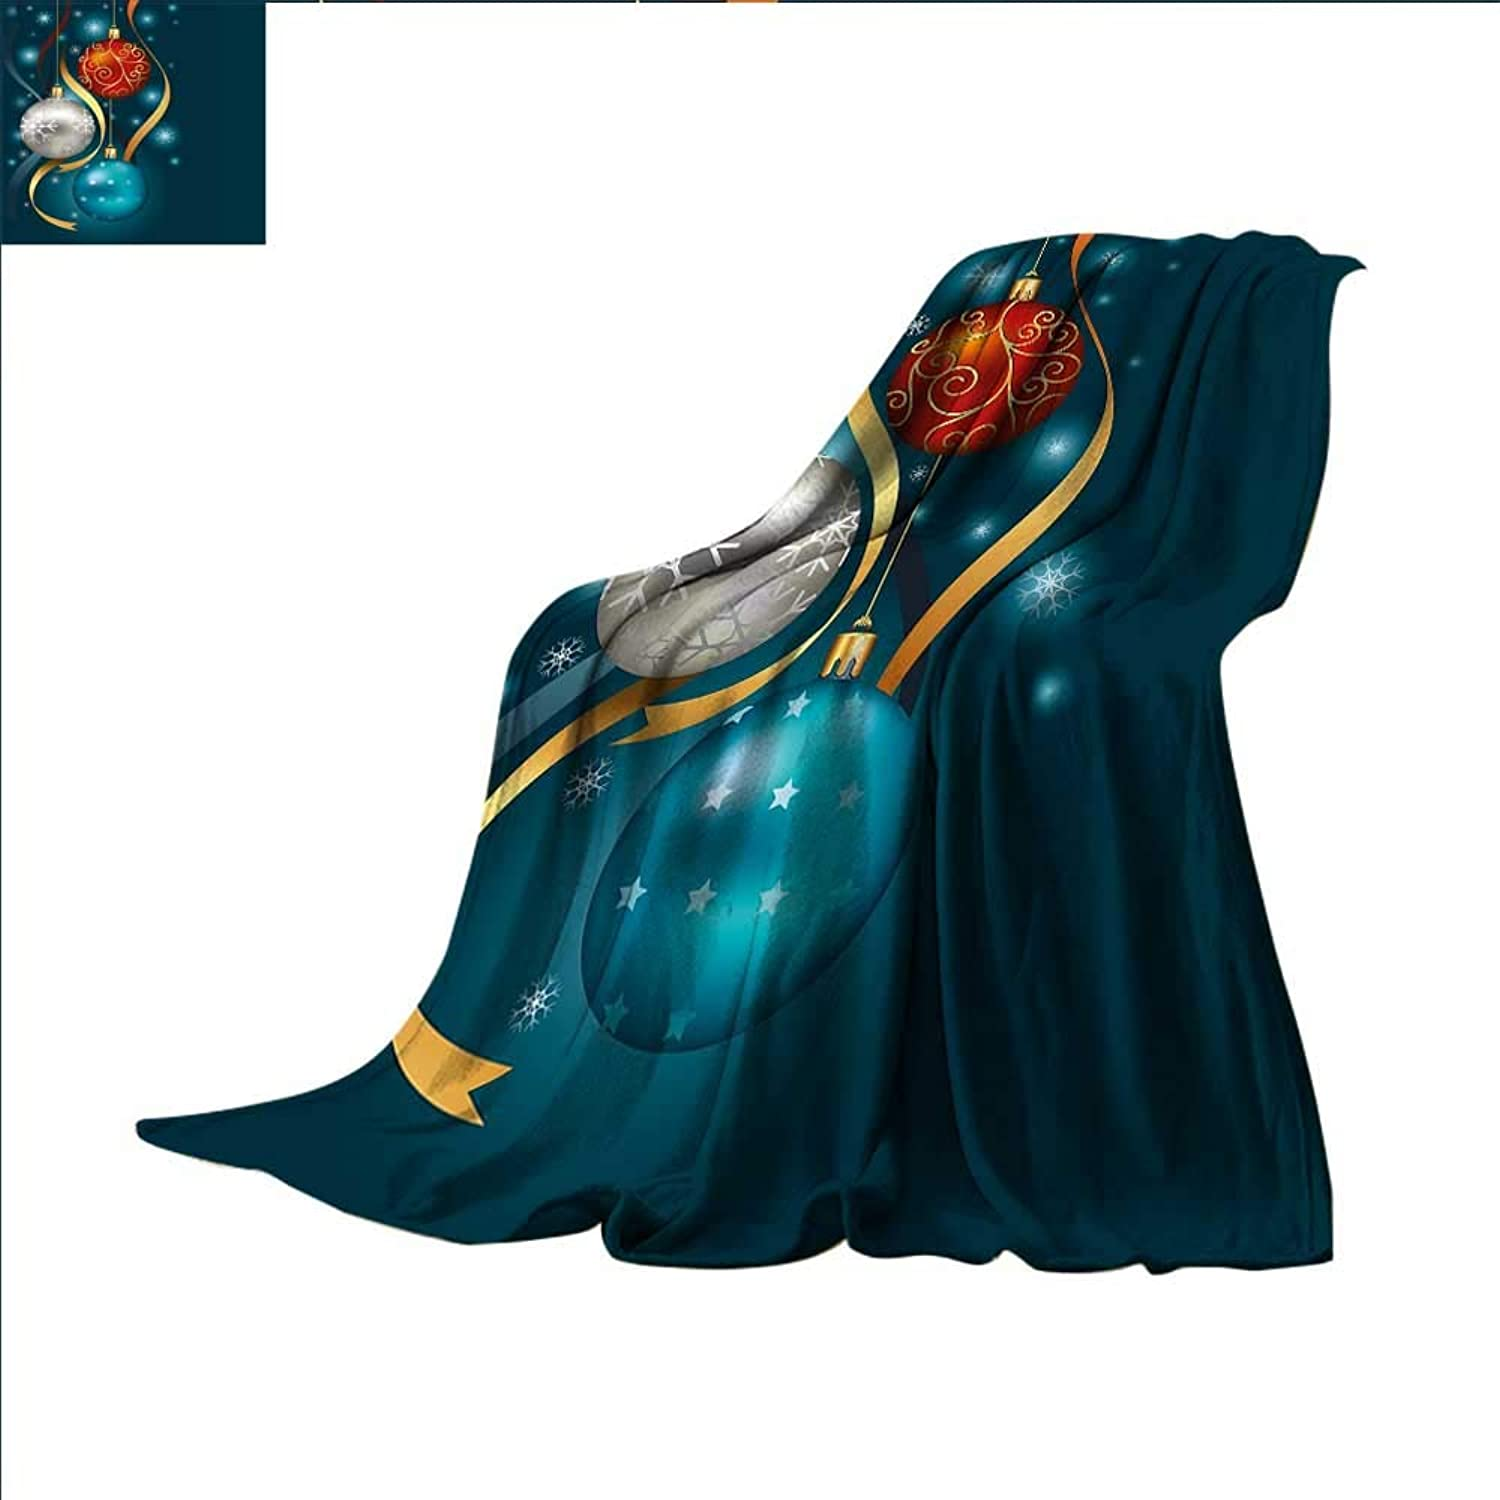 Smallbeefly Christmas Digital Printing Blanket Vivid Classical Baubles with Ribbons and Different Patterns Abstract Summer Quilt Comforter 60 x50  Petrol bluee Grey Red